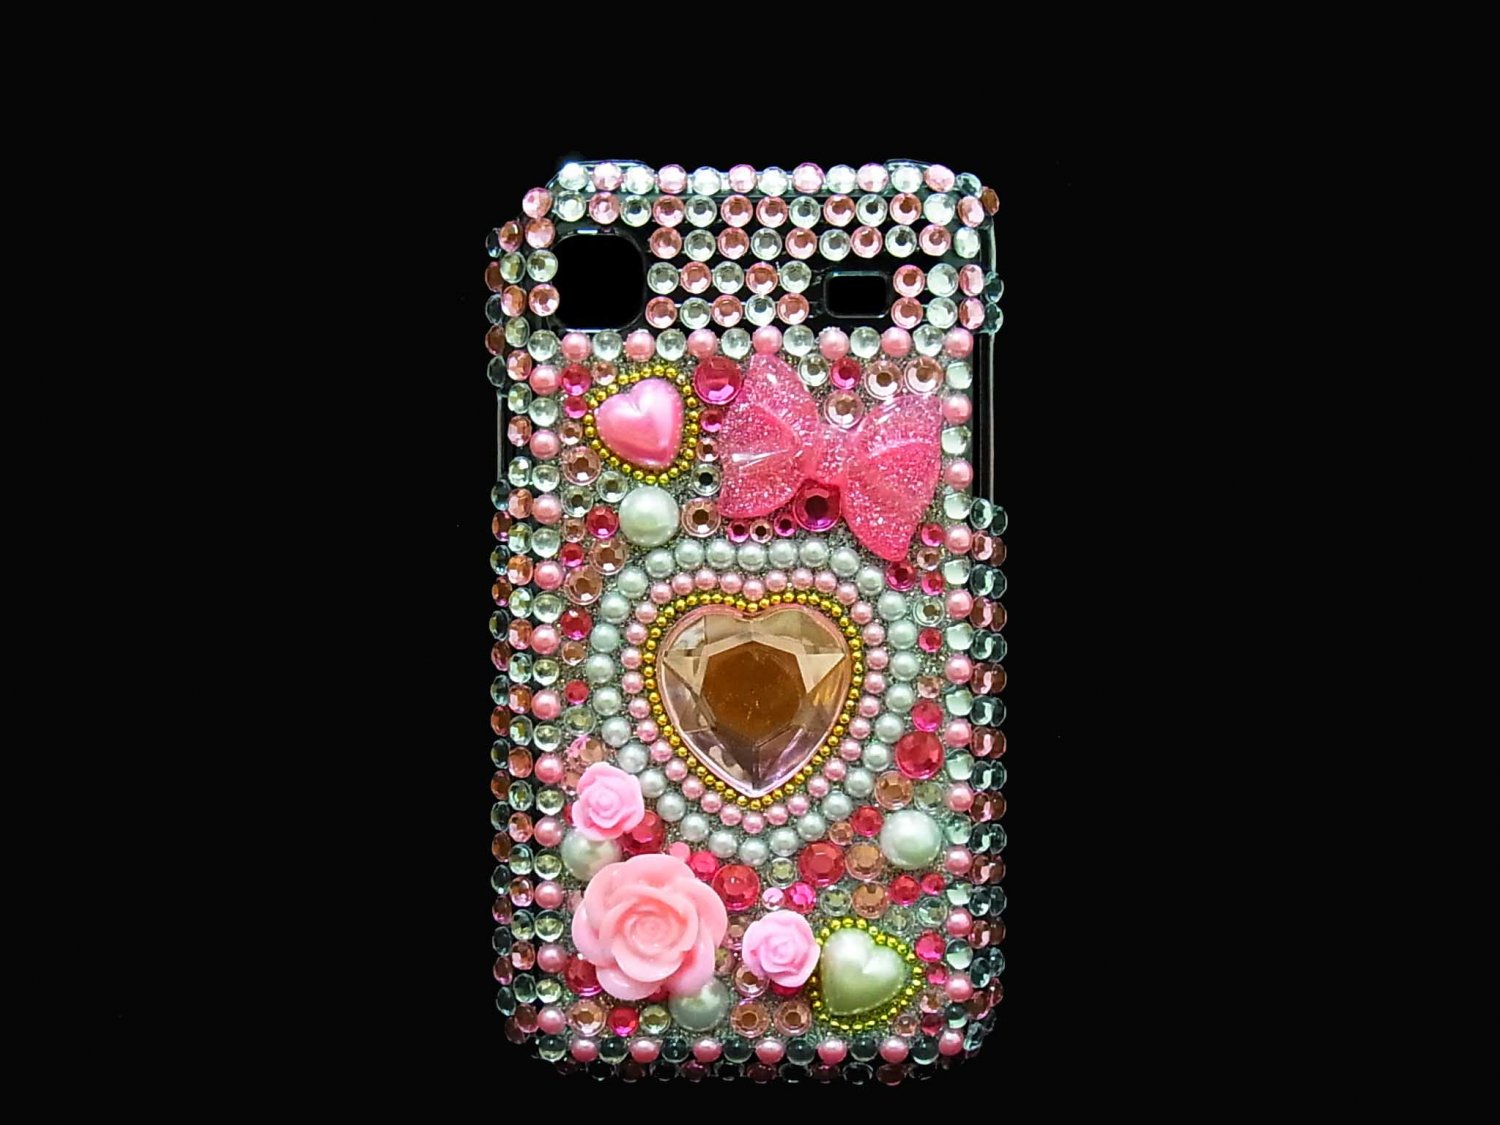 Bling Rhinestone Crystal Pink Heart Flower Case Cover for Samsung i9000 Galaxy S